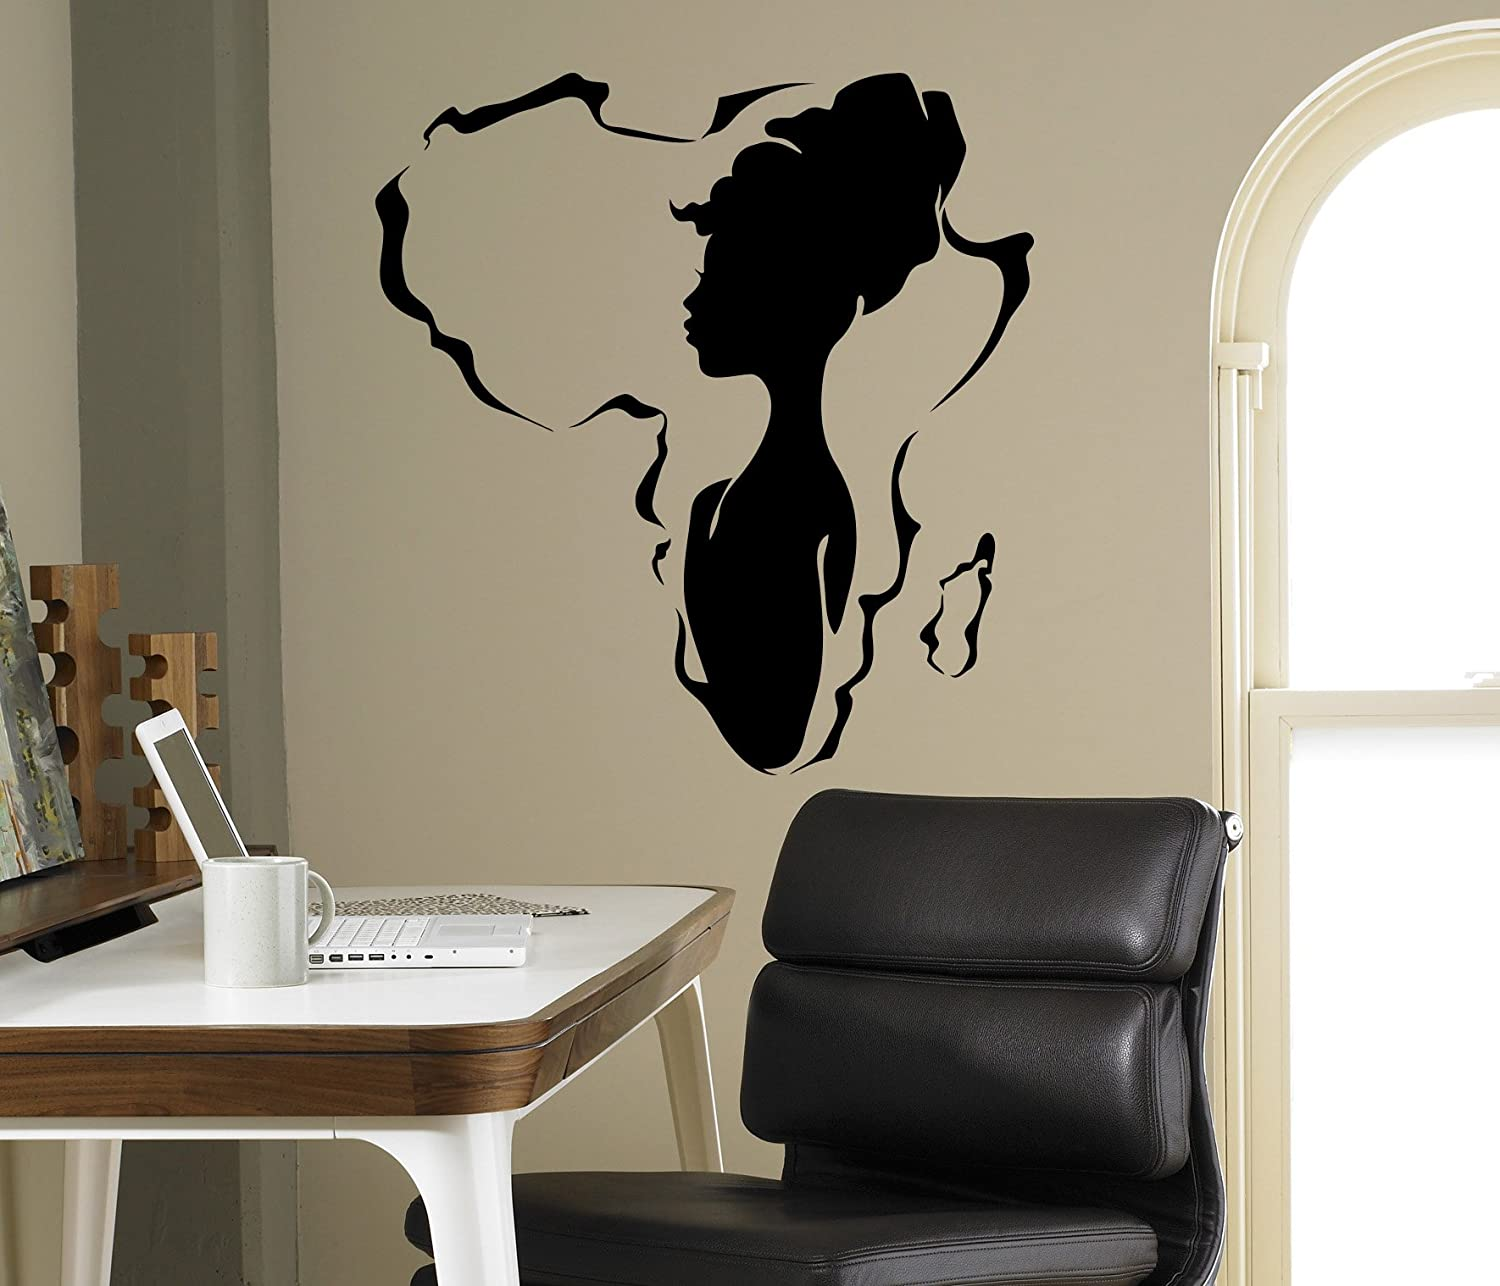 Amazon Com African Woman Wall Vinyl Decal Africa Map Sticker Design Home Interior Art Decor Ideas Bedroom Living Room Office Removable Housewares 7 Afr Home Kitchen